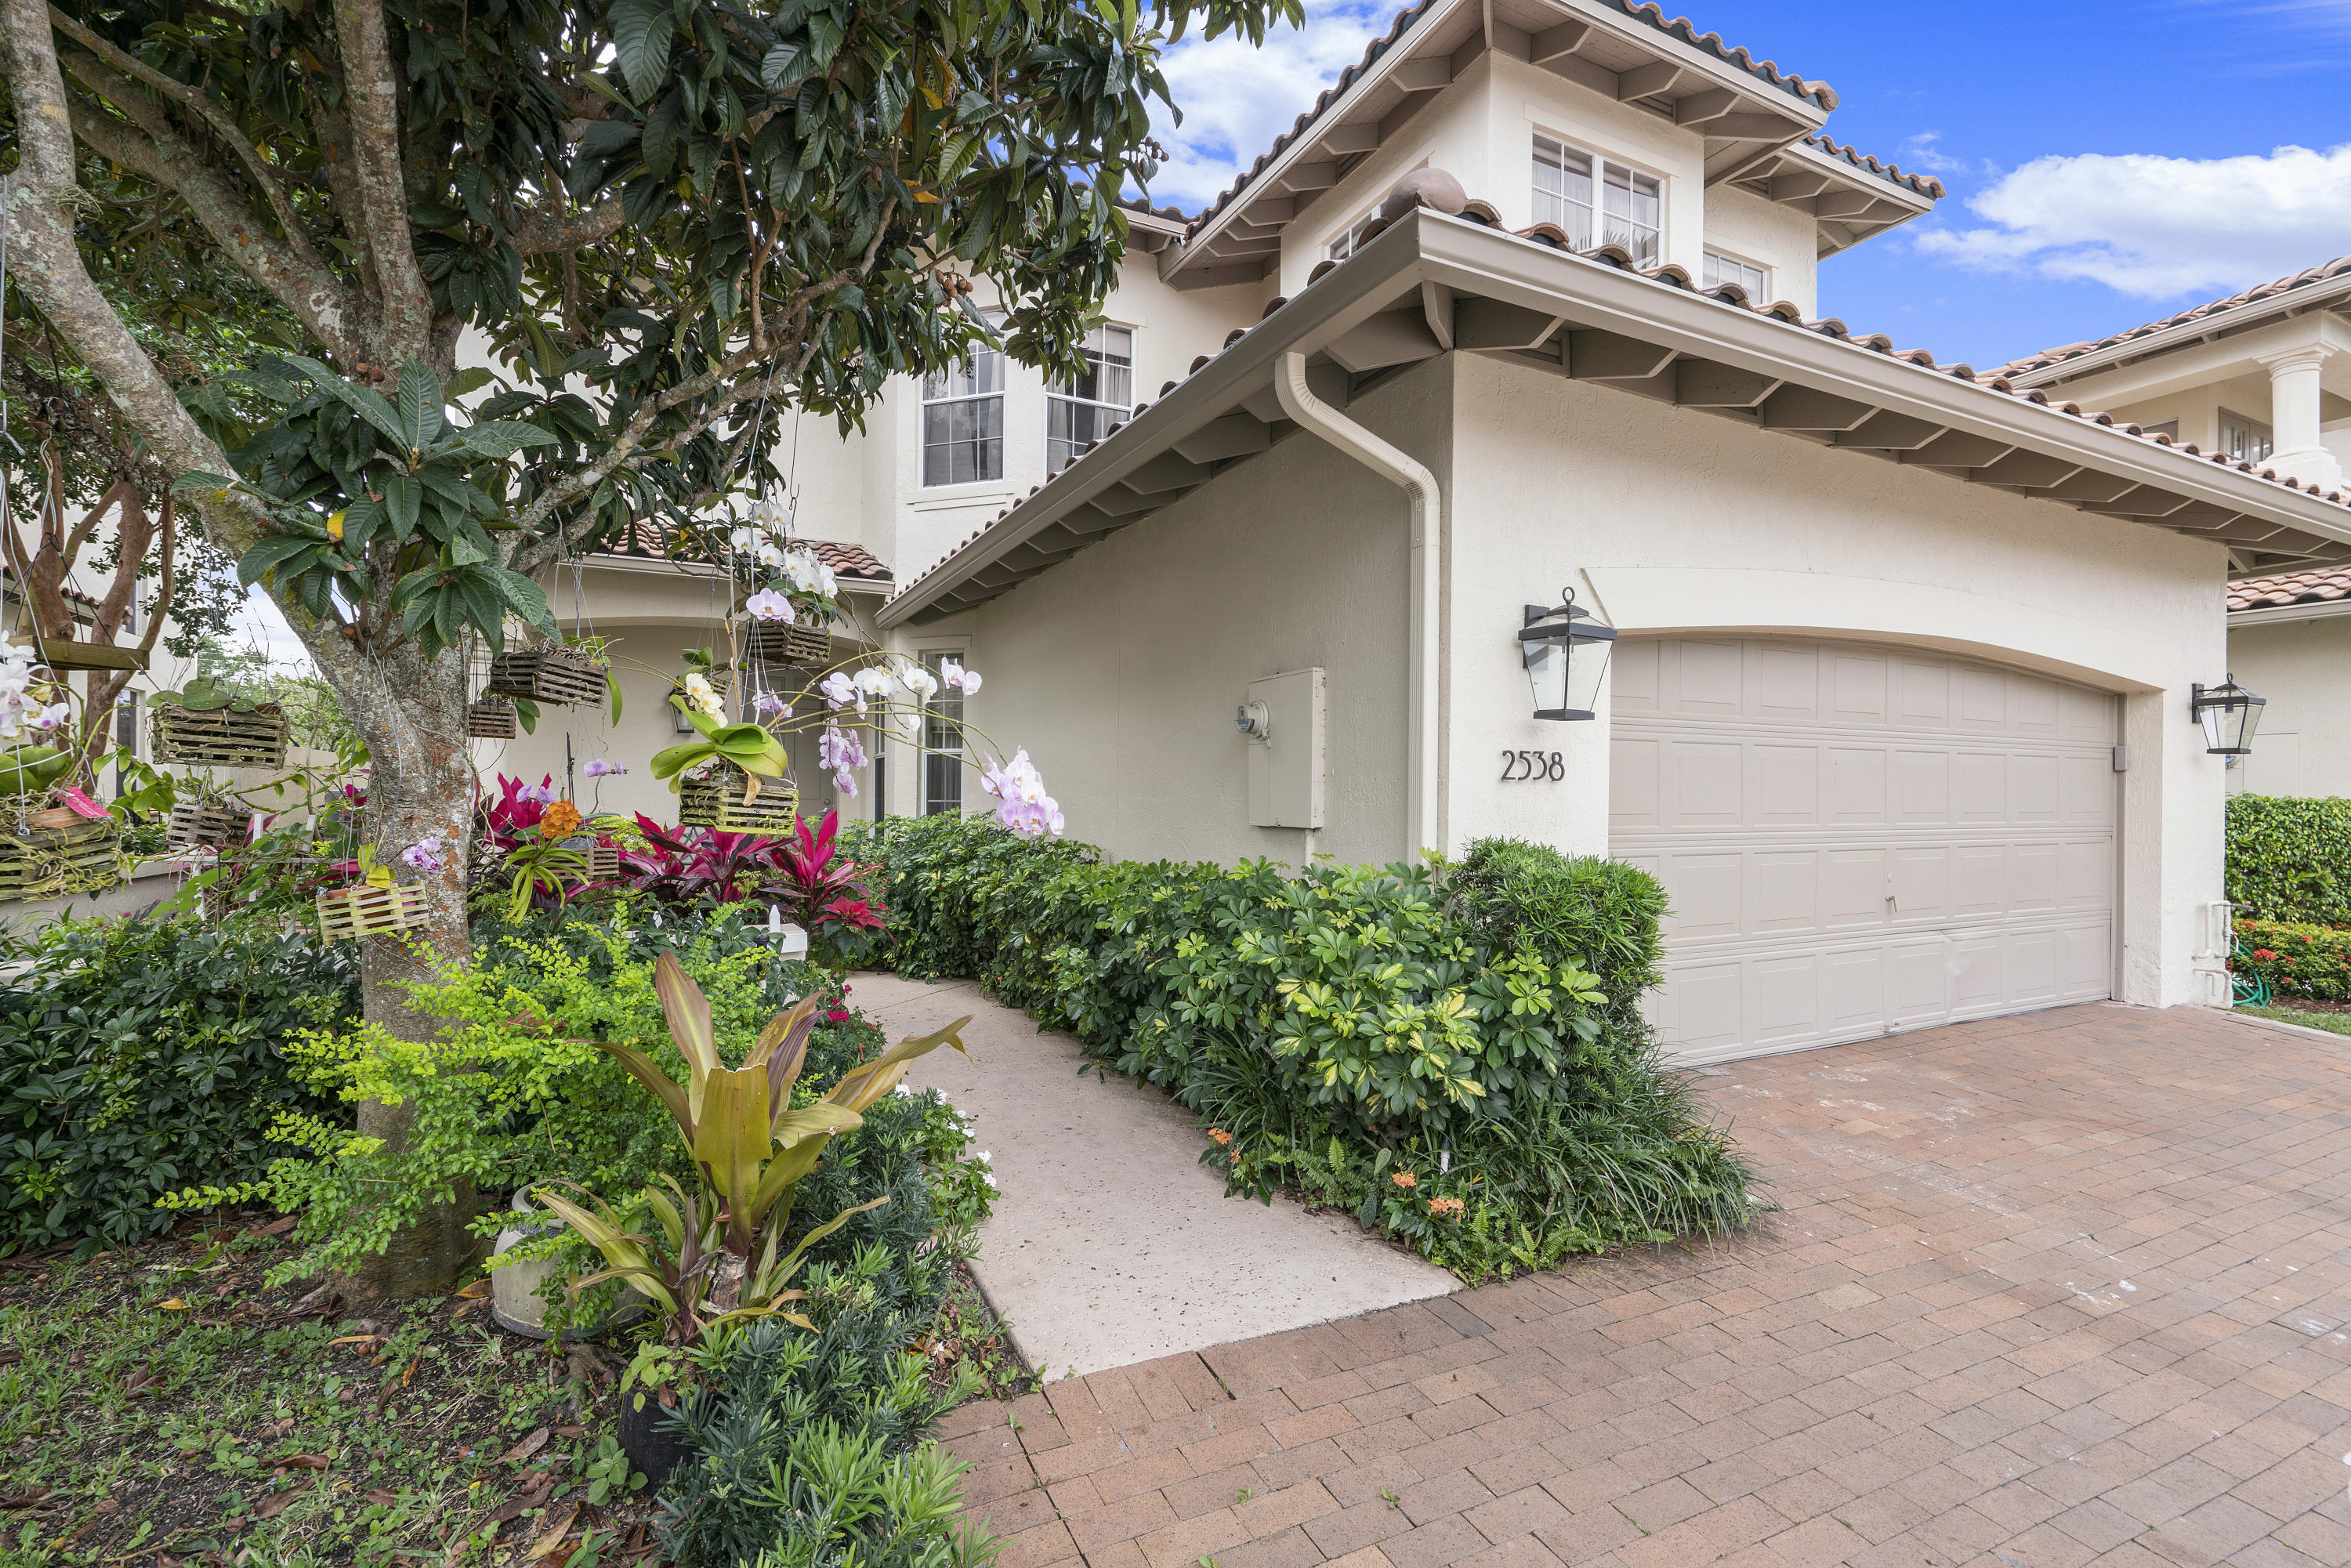 2538 NW 52nd Street  For Sale 10710125, FL